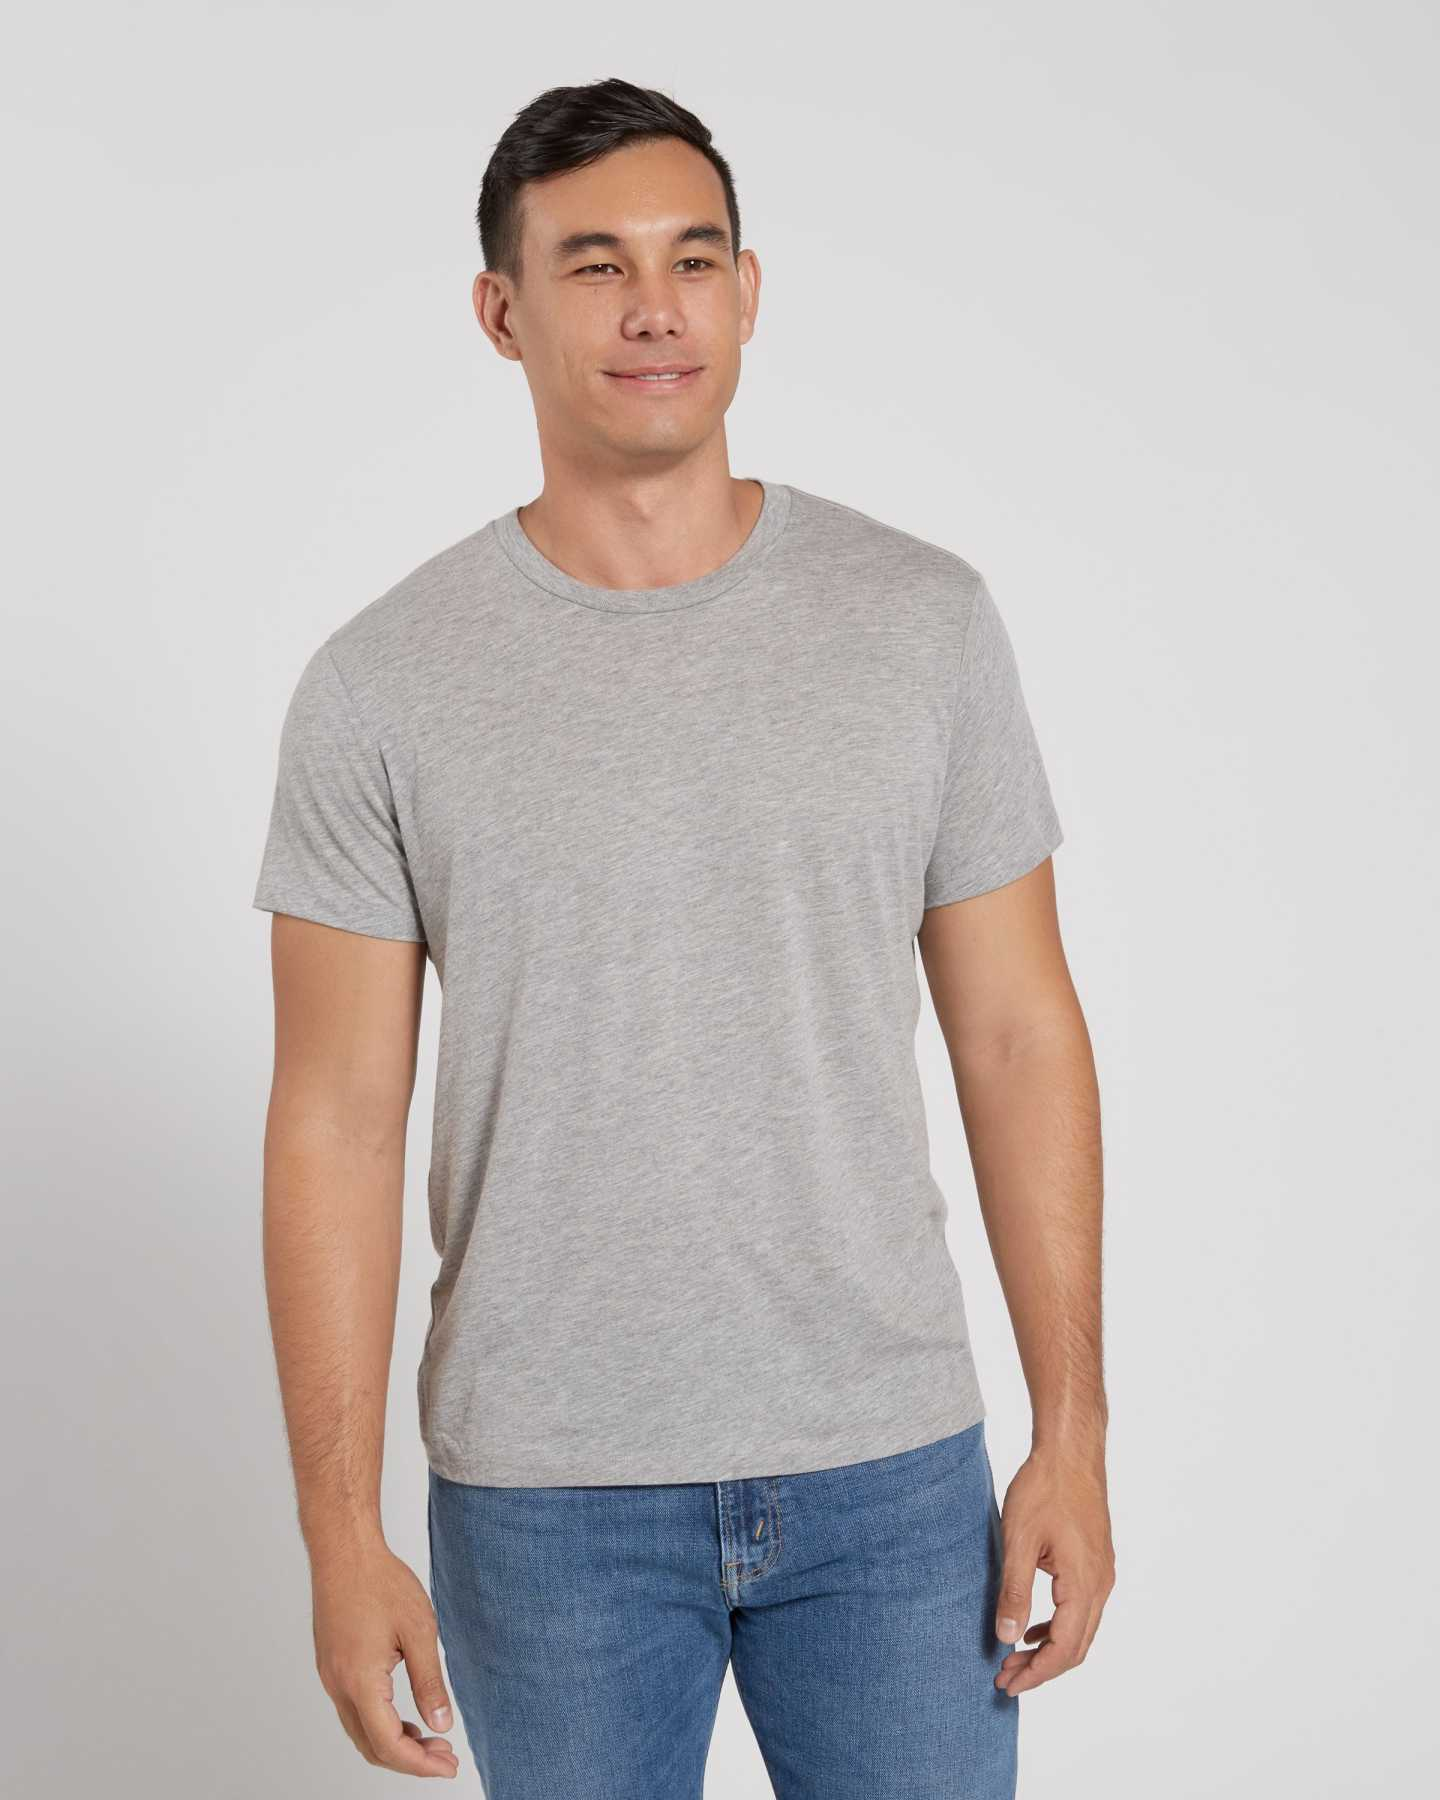 Pair With - Perfect Cotton Tee - White